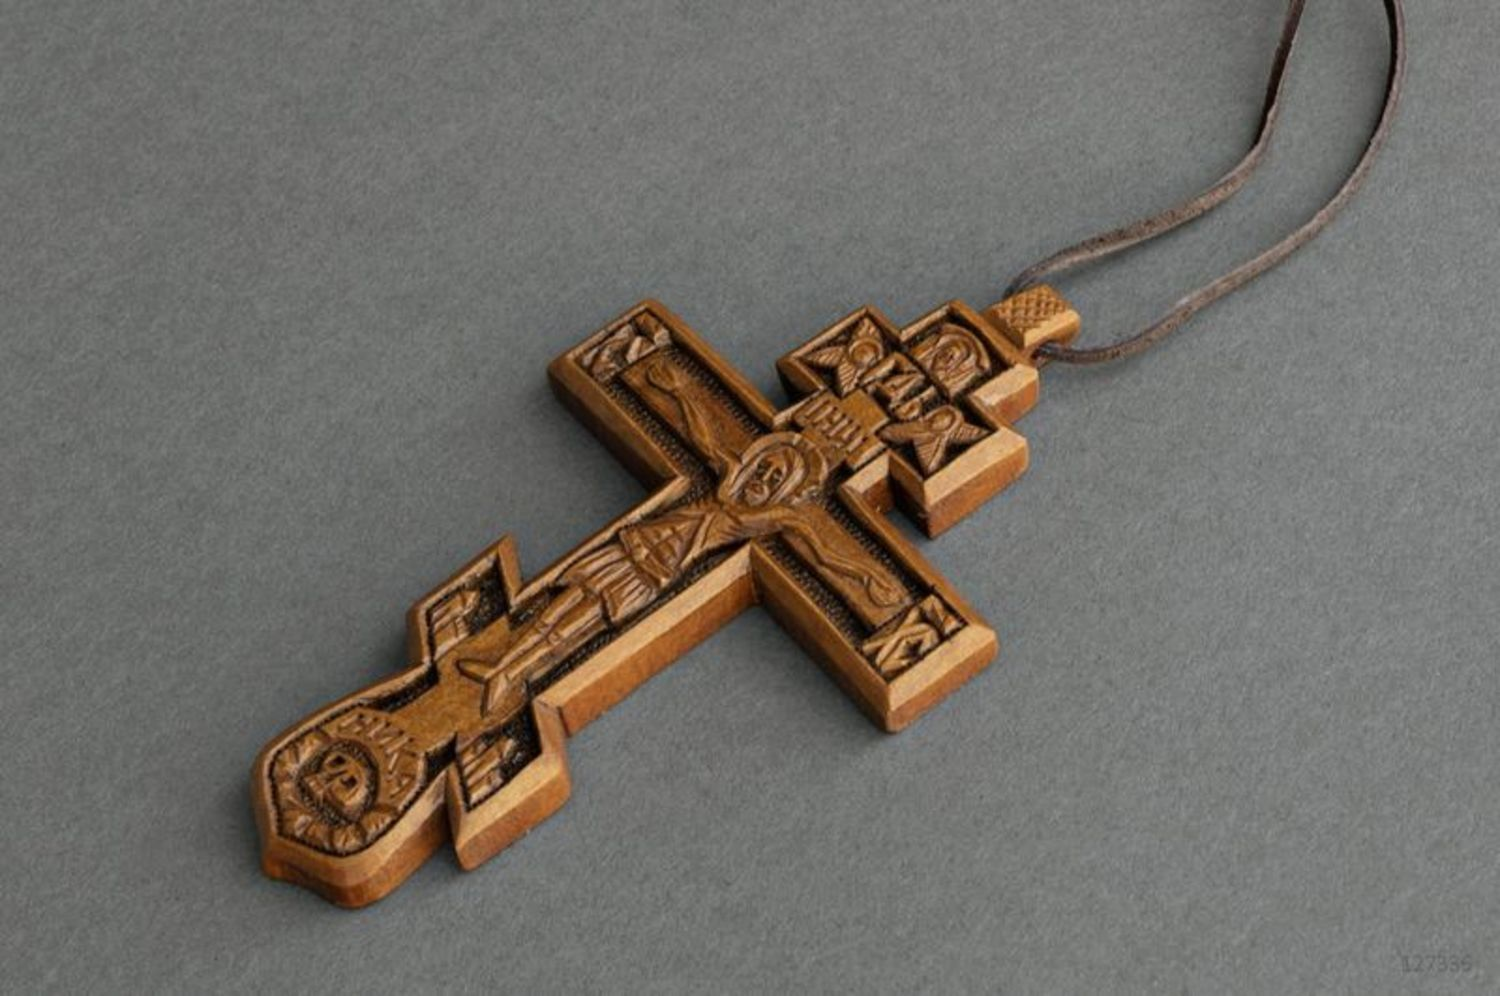 Pectoral cross carved from wood photo 1